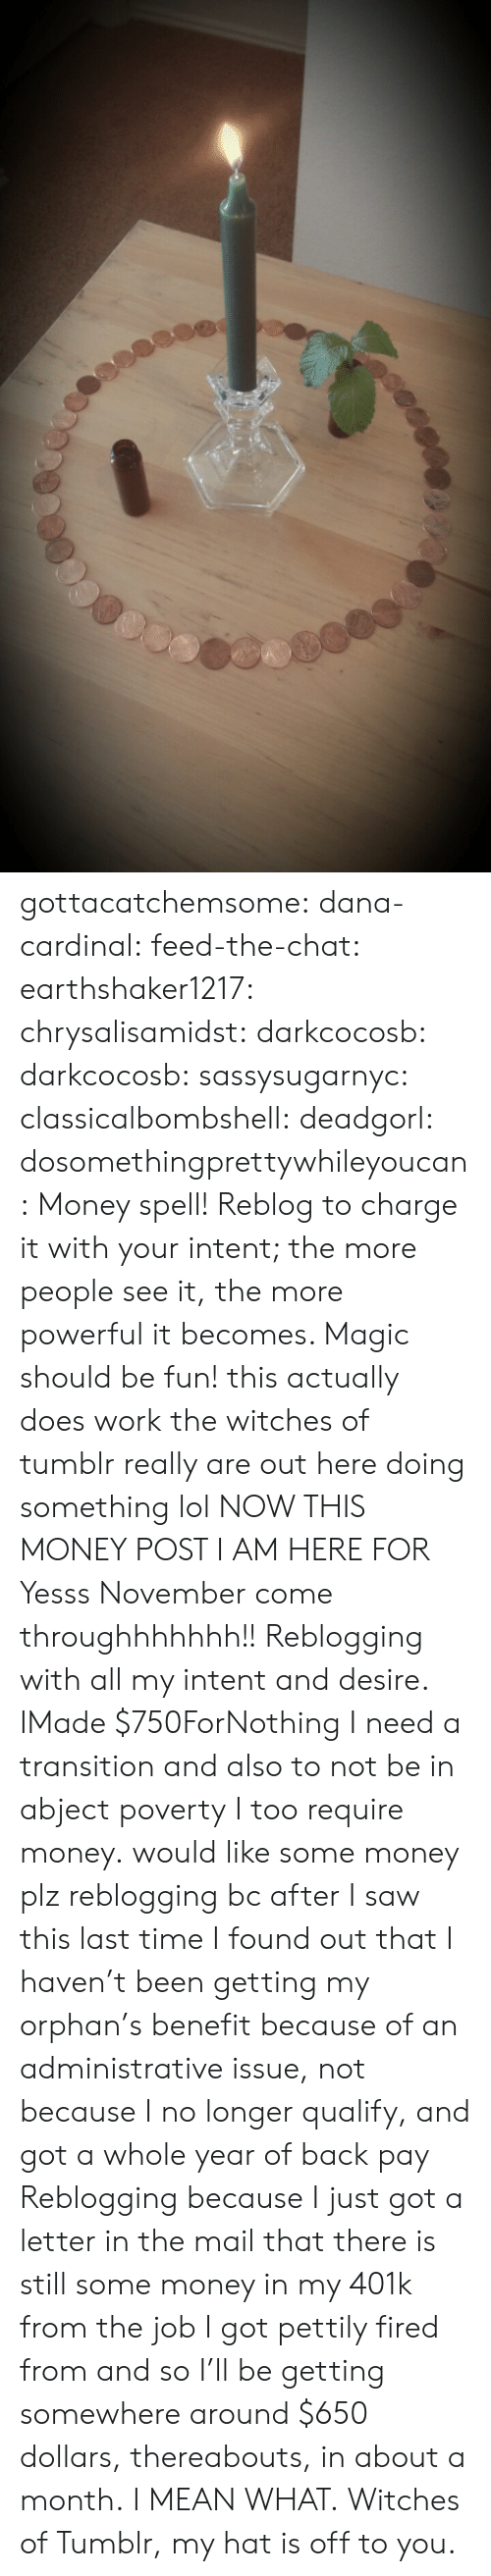 desire: gottacatchemsome: dana-cardinal:  feed-the-chat:  earthshaker1217:  chrysalisamidst:  darkcocosb:  darkcocosb:  sassysugarnyc:  classicalbombshell:  deadgorl:  dosomethingprettywhileyoucan:  Money spell! Reblog to charge it with your intent; the more people see it, the more powerful it becomes. Magic should be fun!  this actually does work the witches of tumblr really are out here doing something lol  NOW THIS MONEY POST I AM HERE FOR  Yesss November come throughhhhhhh!!  Reblogging with all my intent and desire.  IMade $750ForNothing  I need a transition and also to not be in abject poverty  I too require money.  would like some money plz  reblogging bc after I saw this last time I found out that I haven't been getting my orphan's benefit because of an administrative issue, not because I no longer qualify, and got a whole year of back pay  Reblogging because I just got a letter in the mail that there is still some money in my 401k from the job I got pettily fired from and so I'll be getting somewhere around $650 dollars, thereabouts, in about a month. I MEAN WHAT. Witches of Tumblr, my hat is off to you.